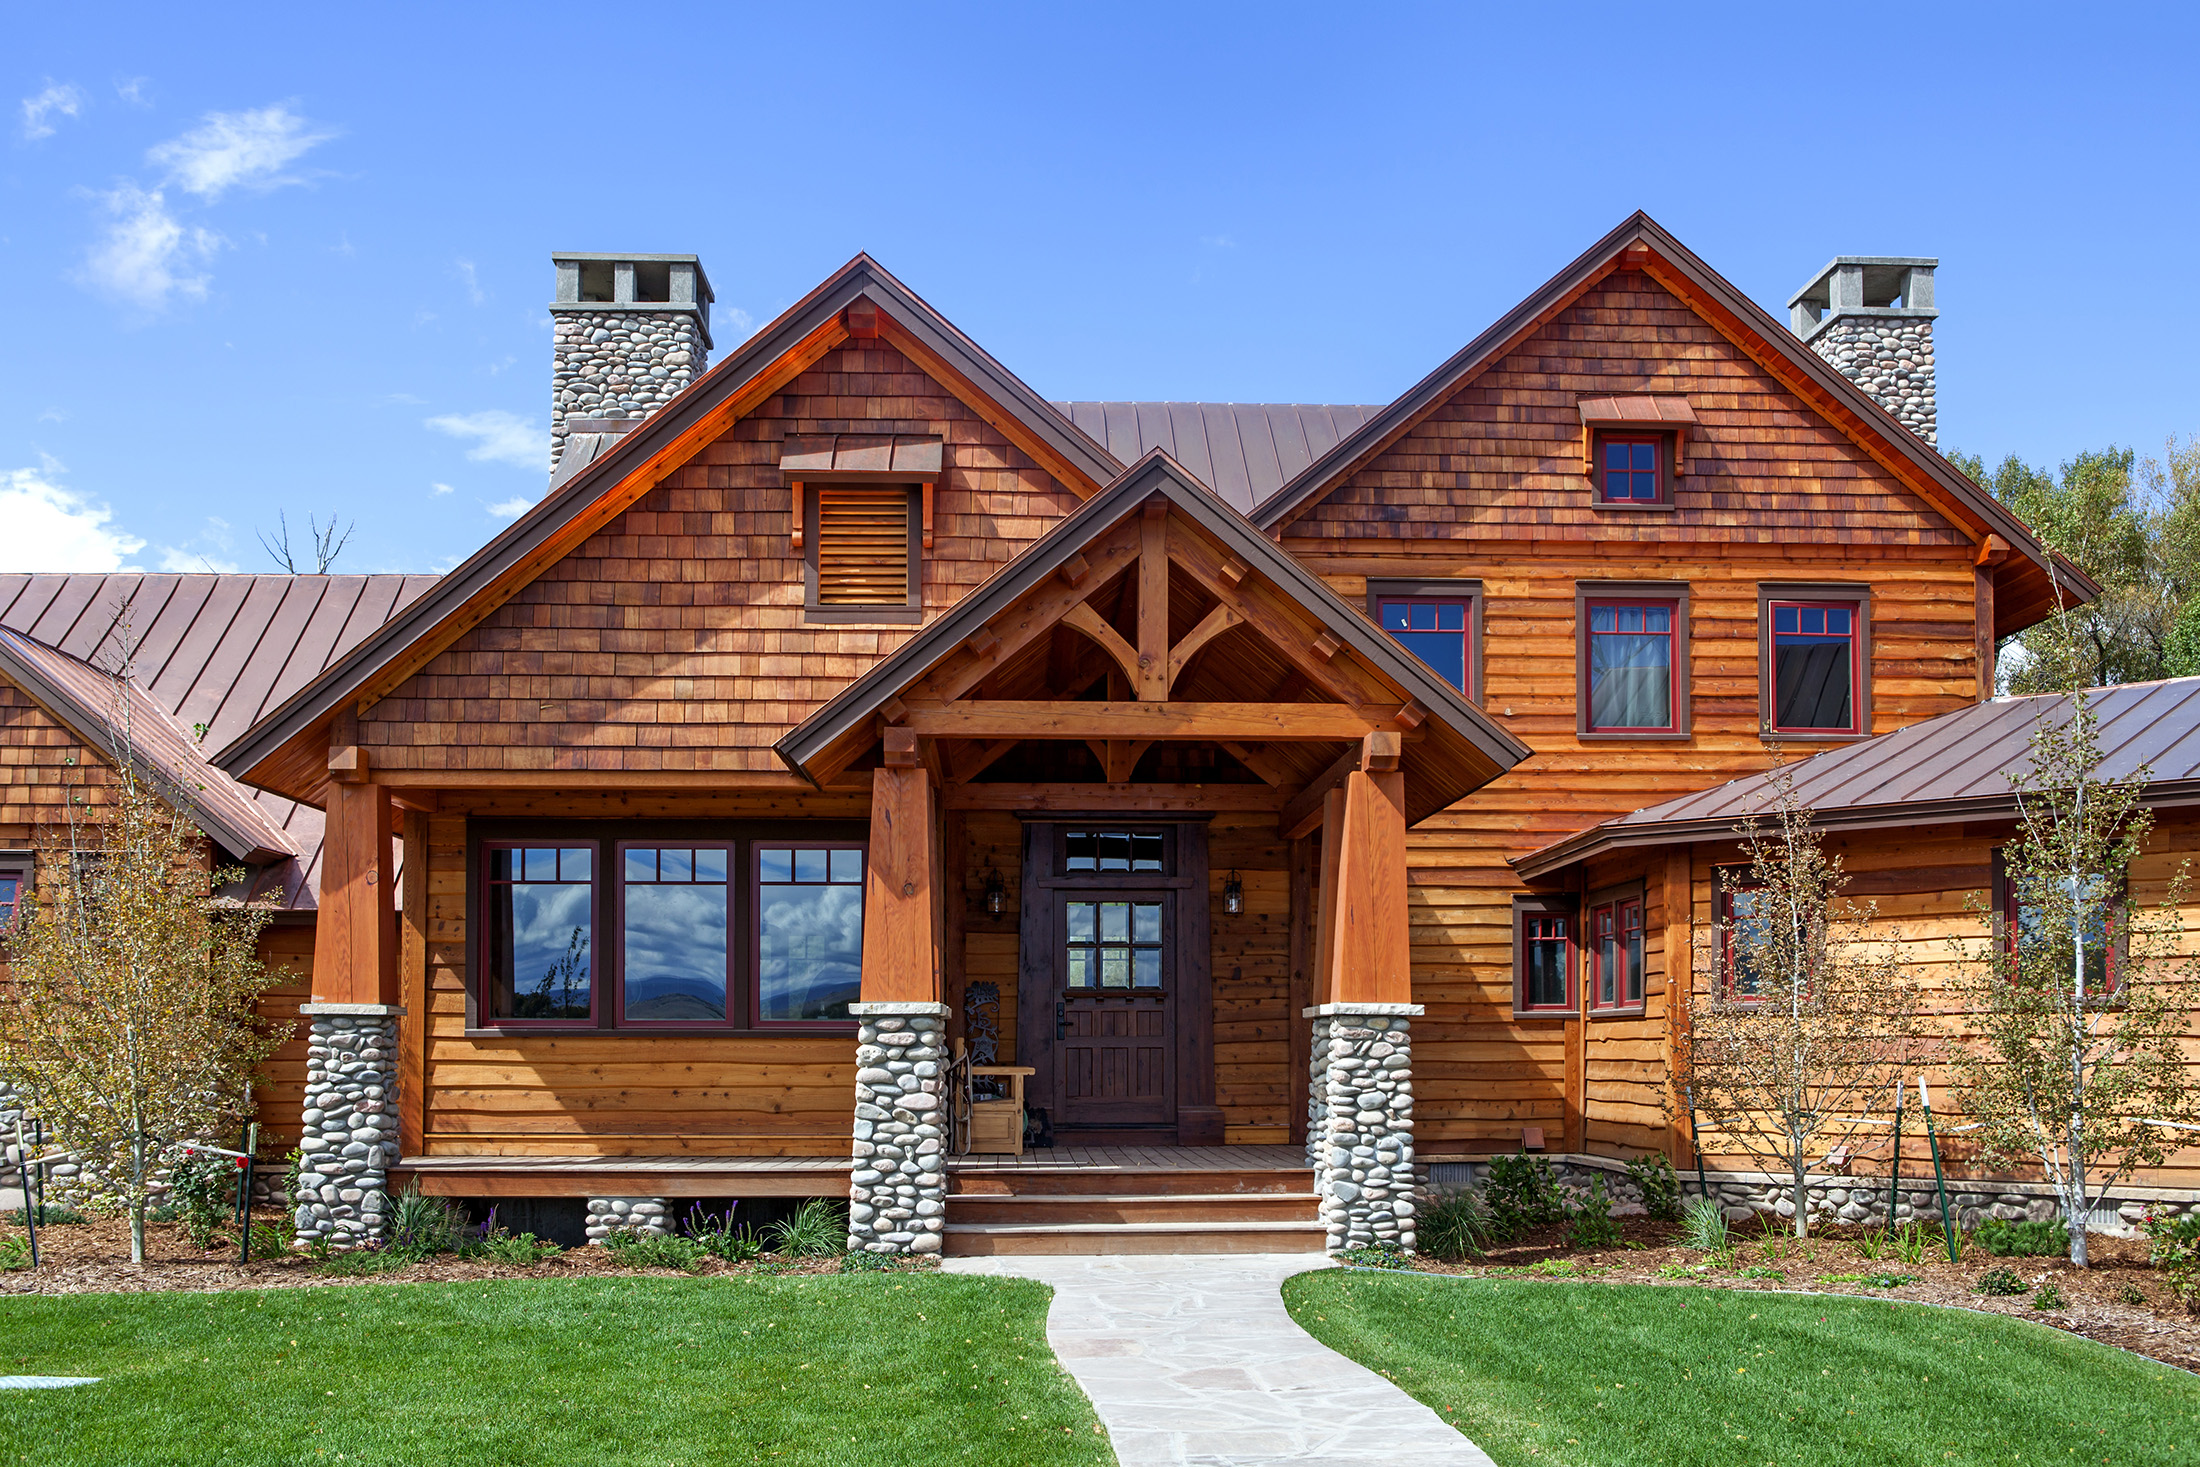 Timber frame home with front walk